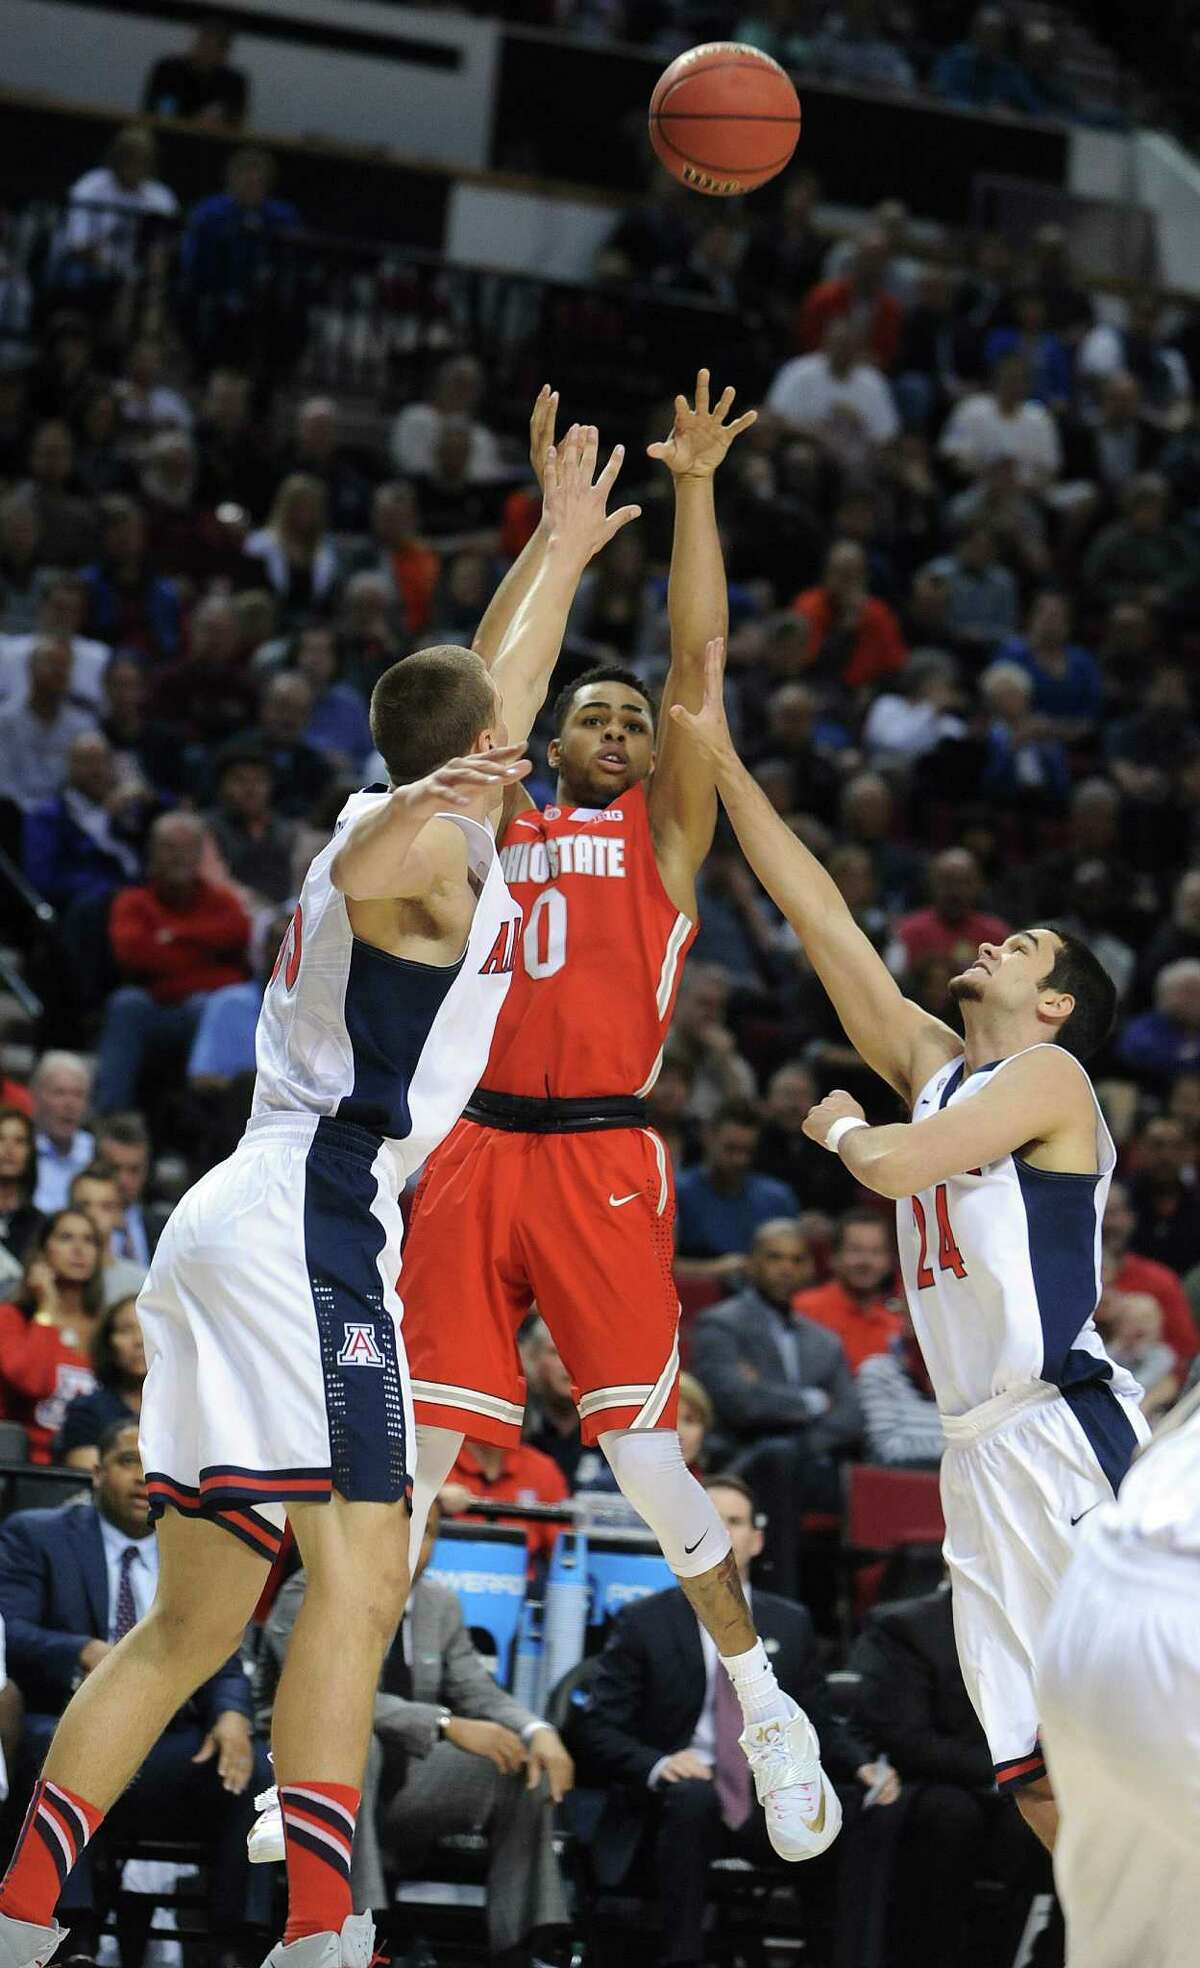 Ohio State guard D'Angelo Russell shoots between Arizona guard Elliott Pitts, right, and Arizona center Kaleb Tarczewski during an NCAA tournament round of 32 game in Portland, Ore.